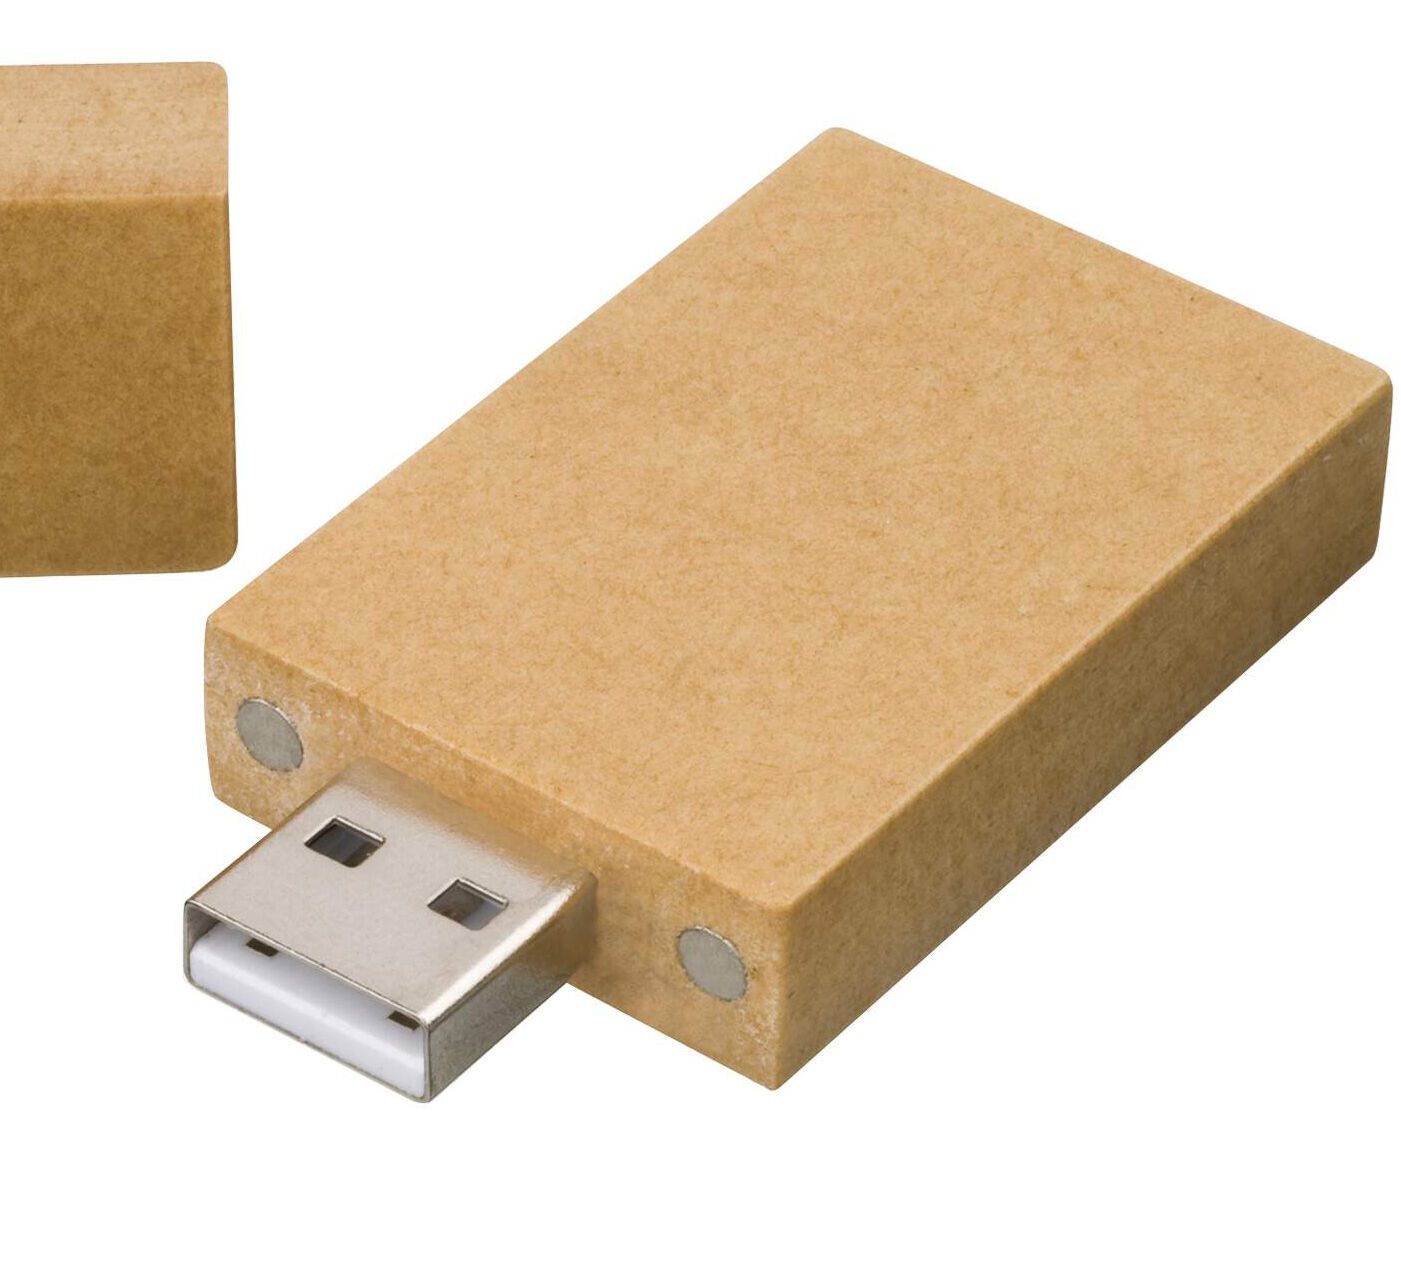 Printed USB Stick made from Recycled Paper